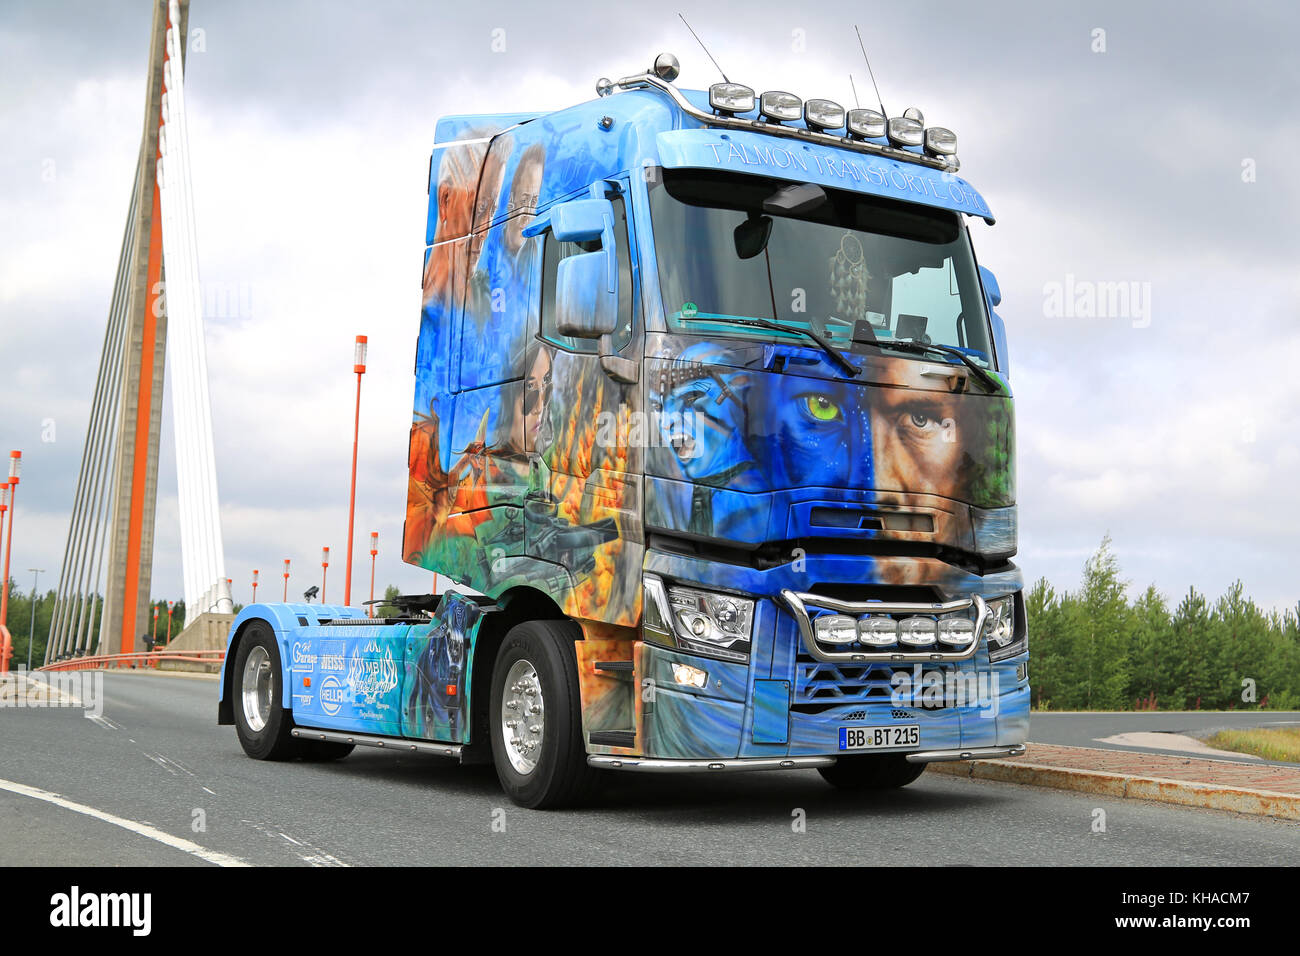 LEMPAALA, FINLAND - AUGUST 6, 2015: The German Renault Trucks T480 Avatar of Talmon Transporte OHG takes part in - Stock Image